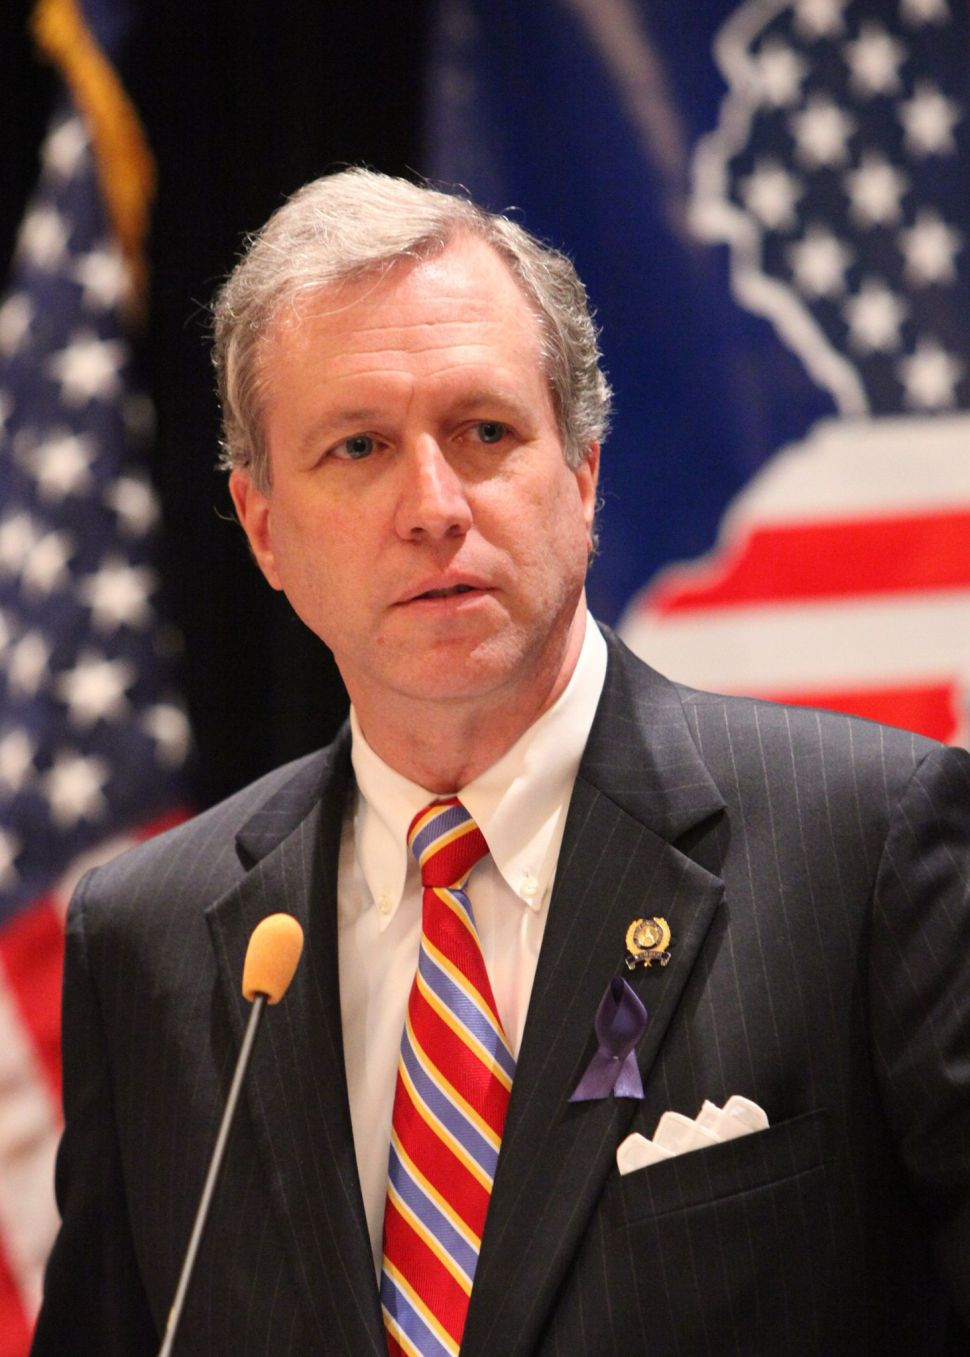 Exclusive: Wisniewski Represents Polluter Against NJ Town in His Own District